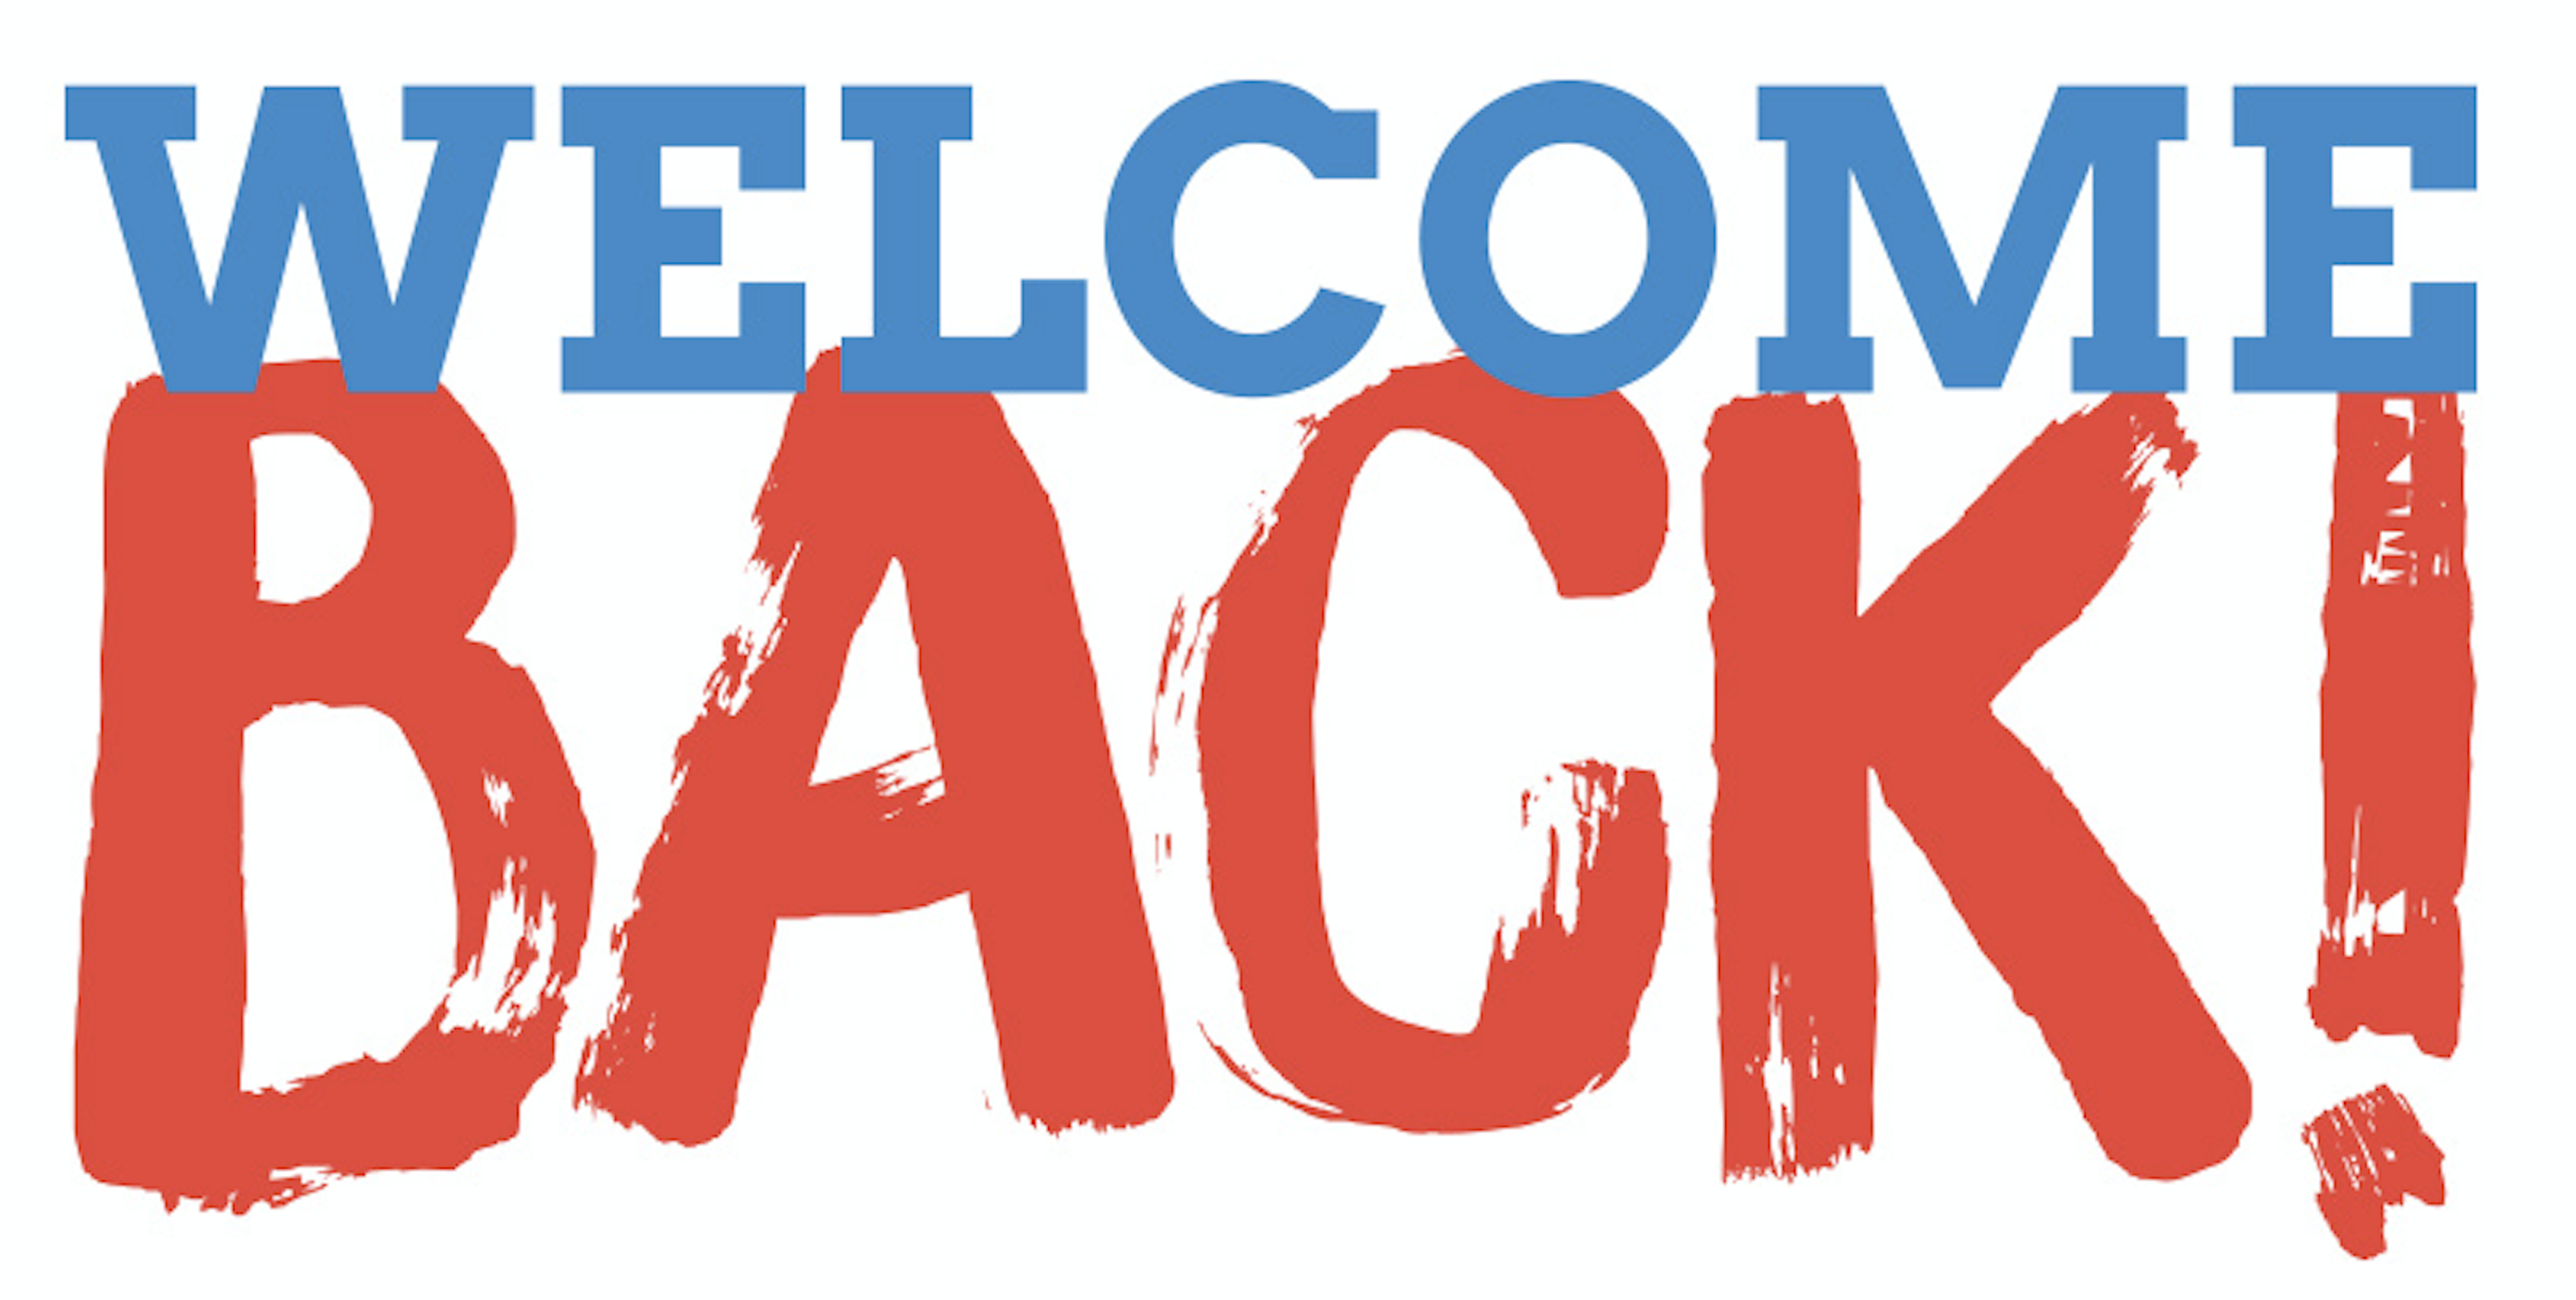 WELCOME BACK!